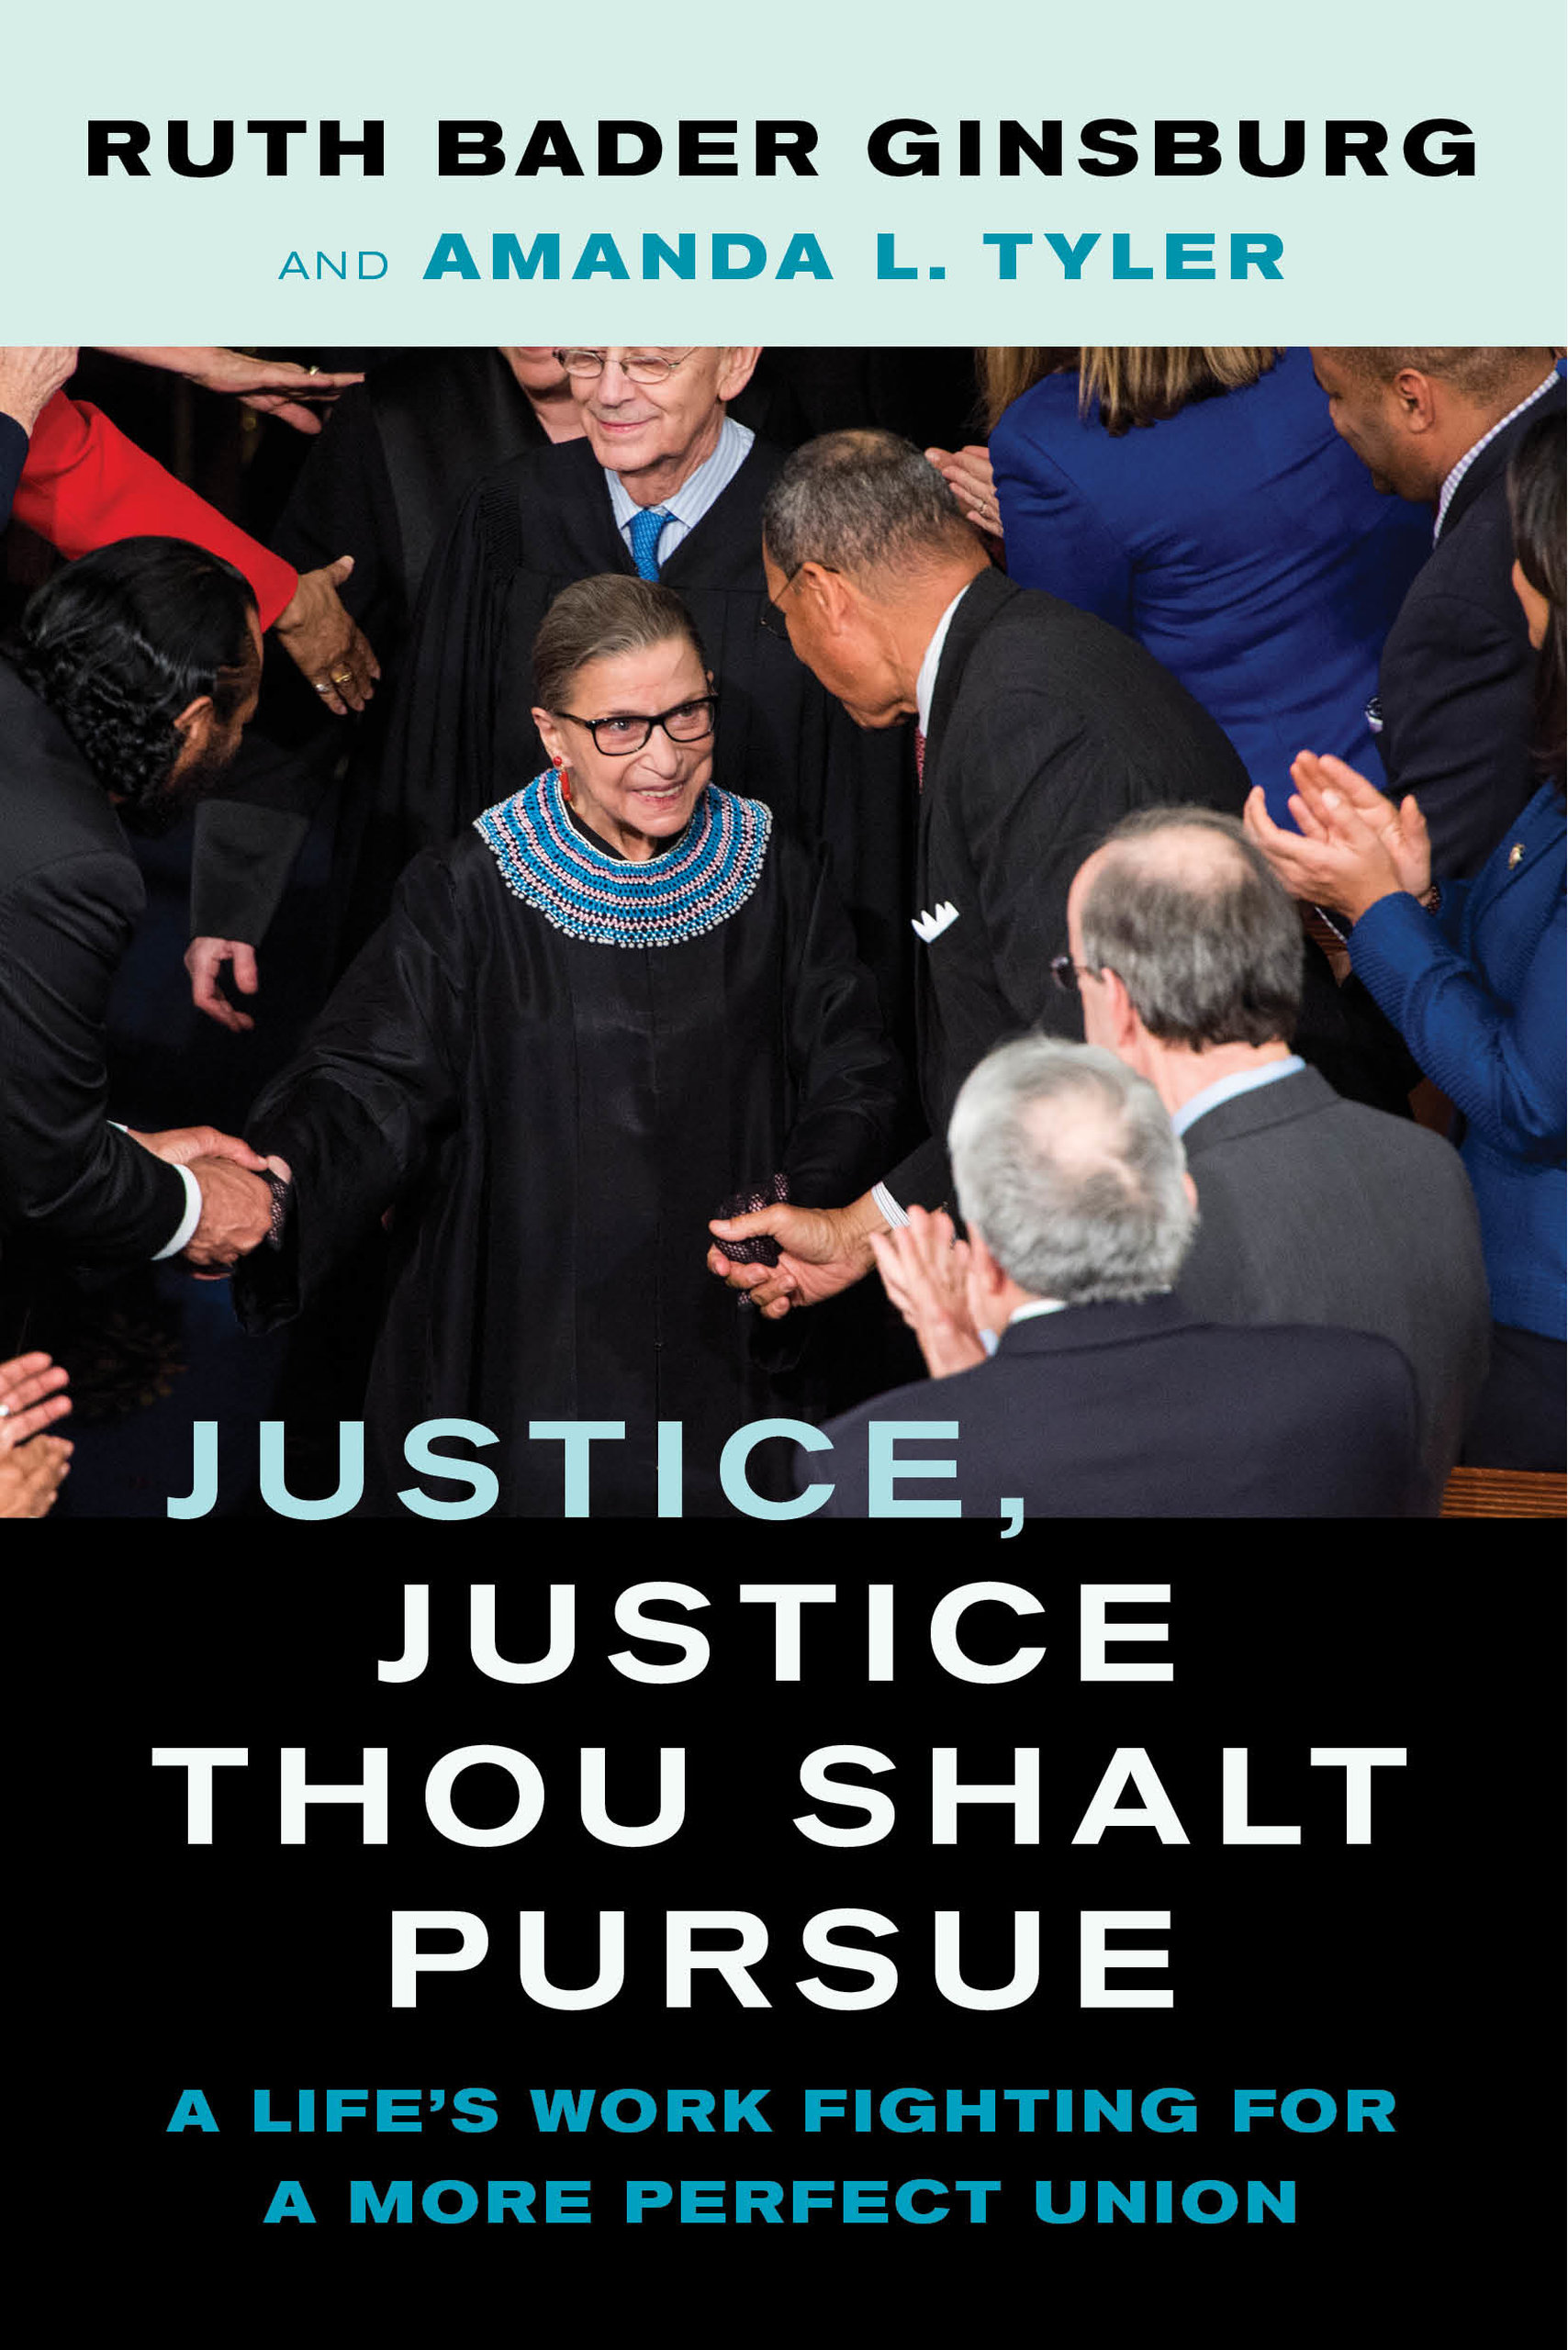 Justice, Justice Thou Shalt Pursue, reviewed in Washington Post